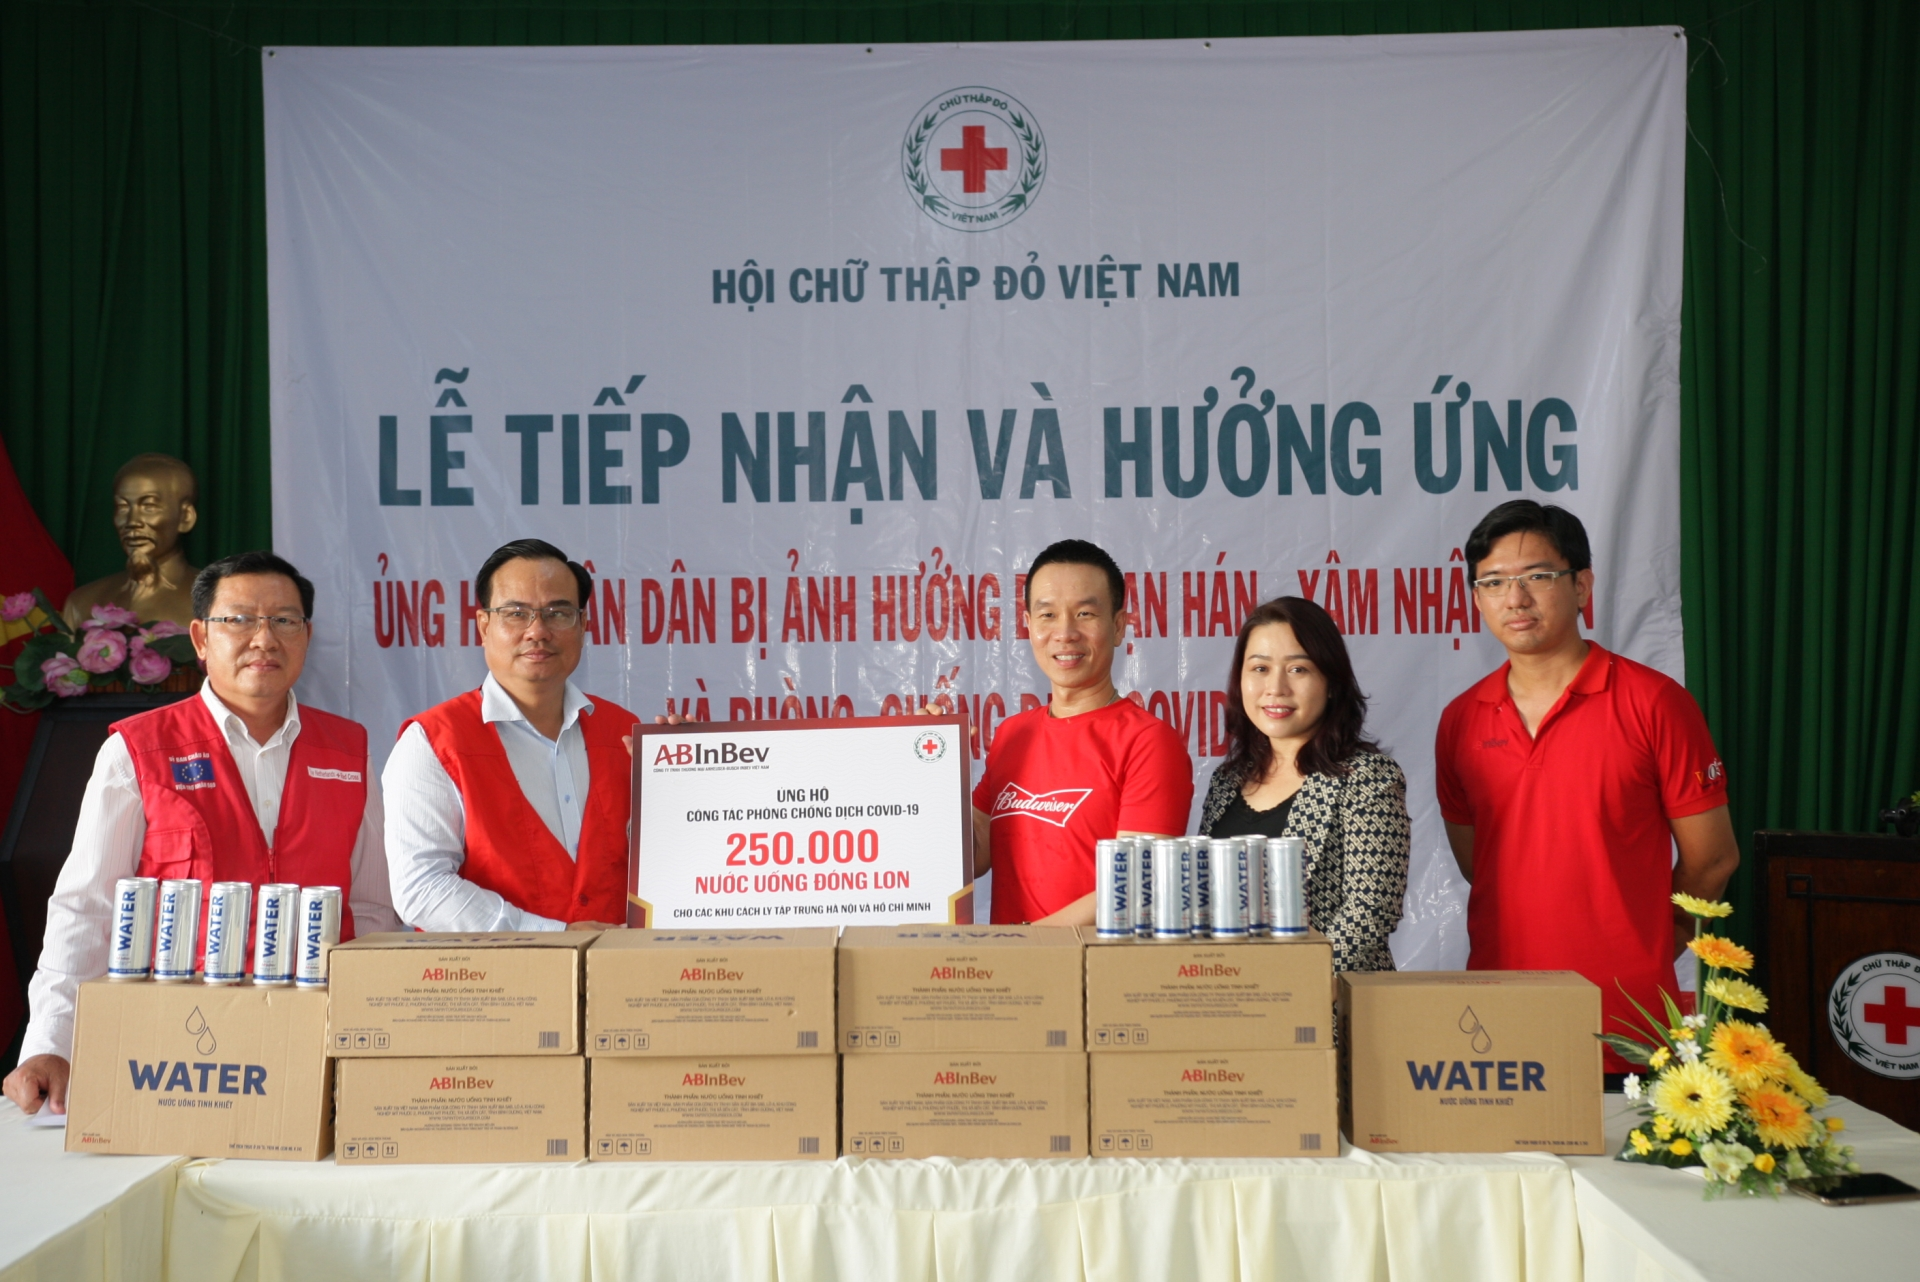 AB InBev donates 250,000 cans of mineral water to isolation centres in Vietnam